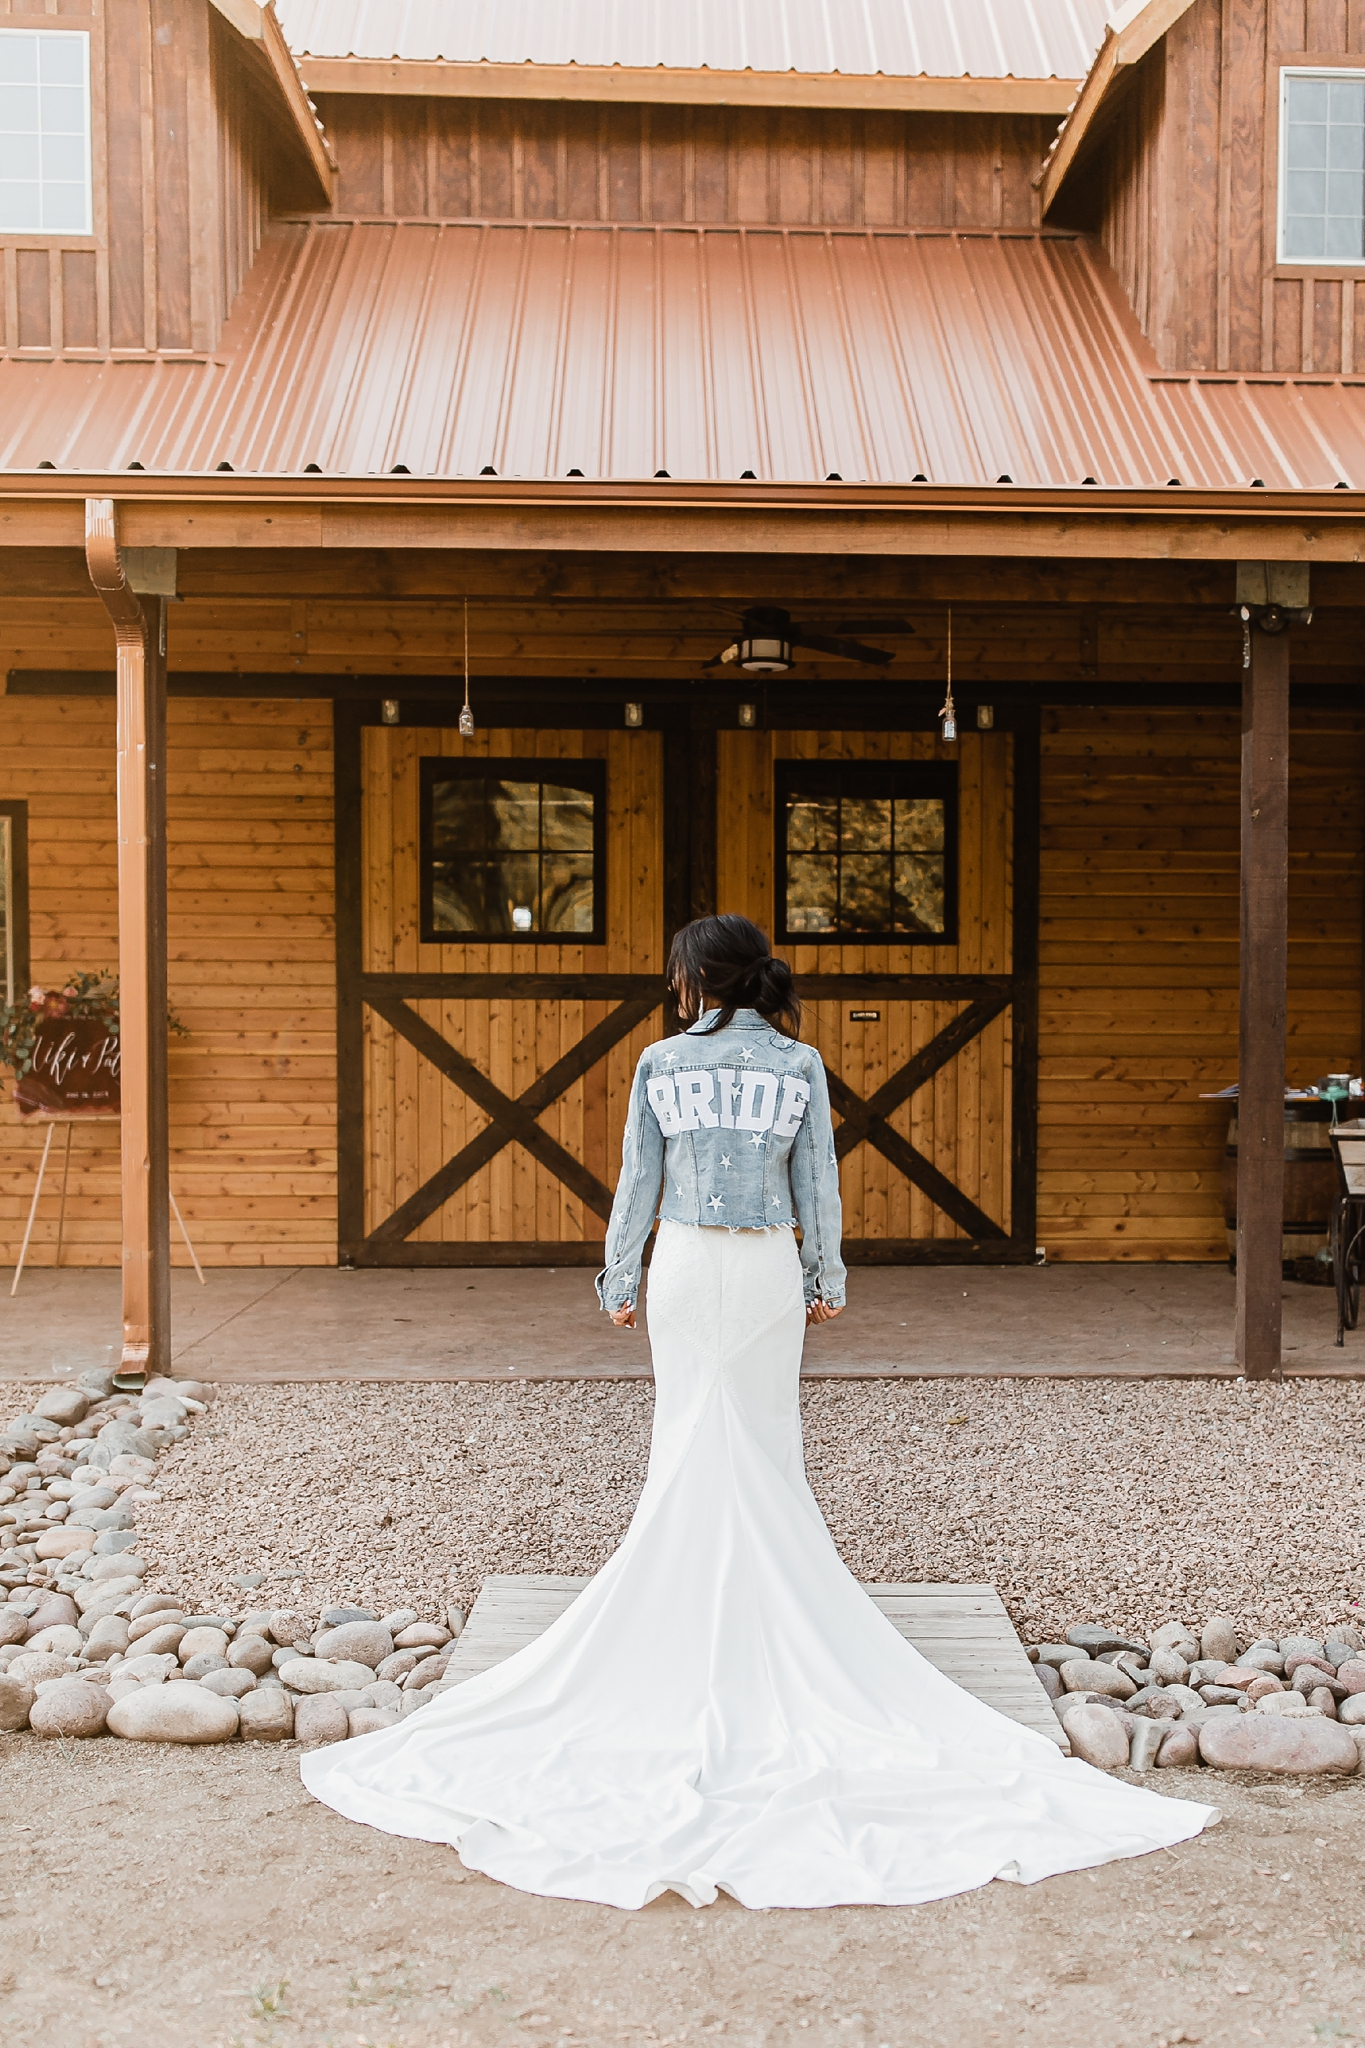 Alicia+lucia+photography+-+albuquerque+wedding+photographer+-+santa+fe+wedding+photography+-+new+mexico+wedding+photographer+-+new+mexico+wedding+-+new+mexico+wedding+-+barn+wedding+-+enchanted+vine+barn+wedding+-+ruidoso+wedding_0137.jpg